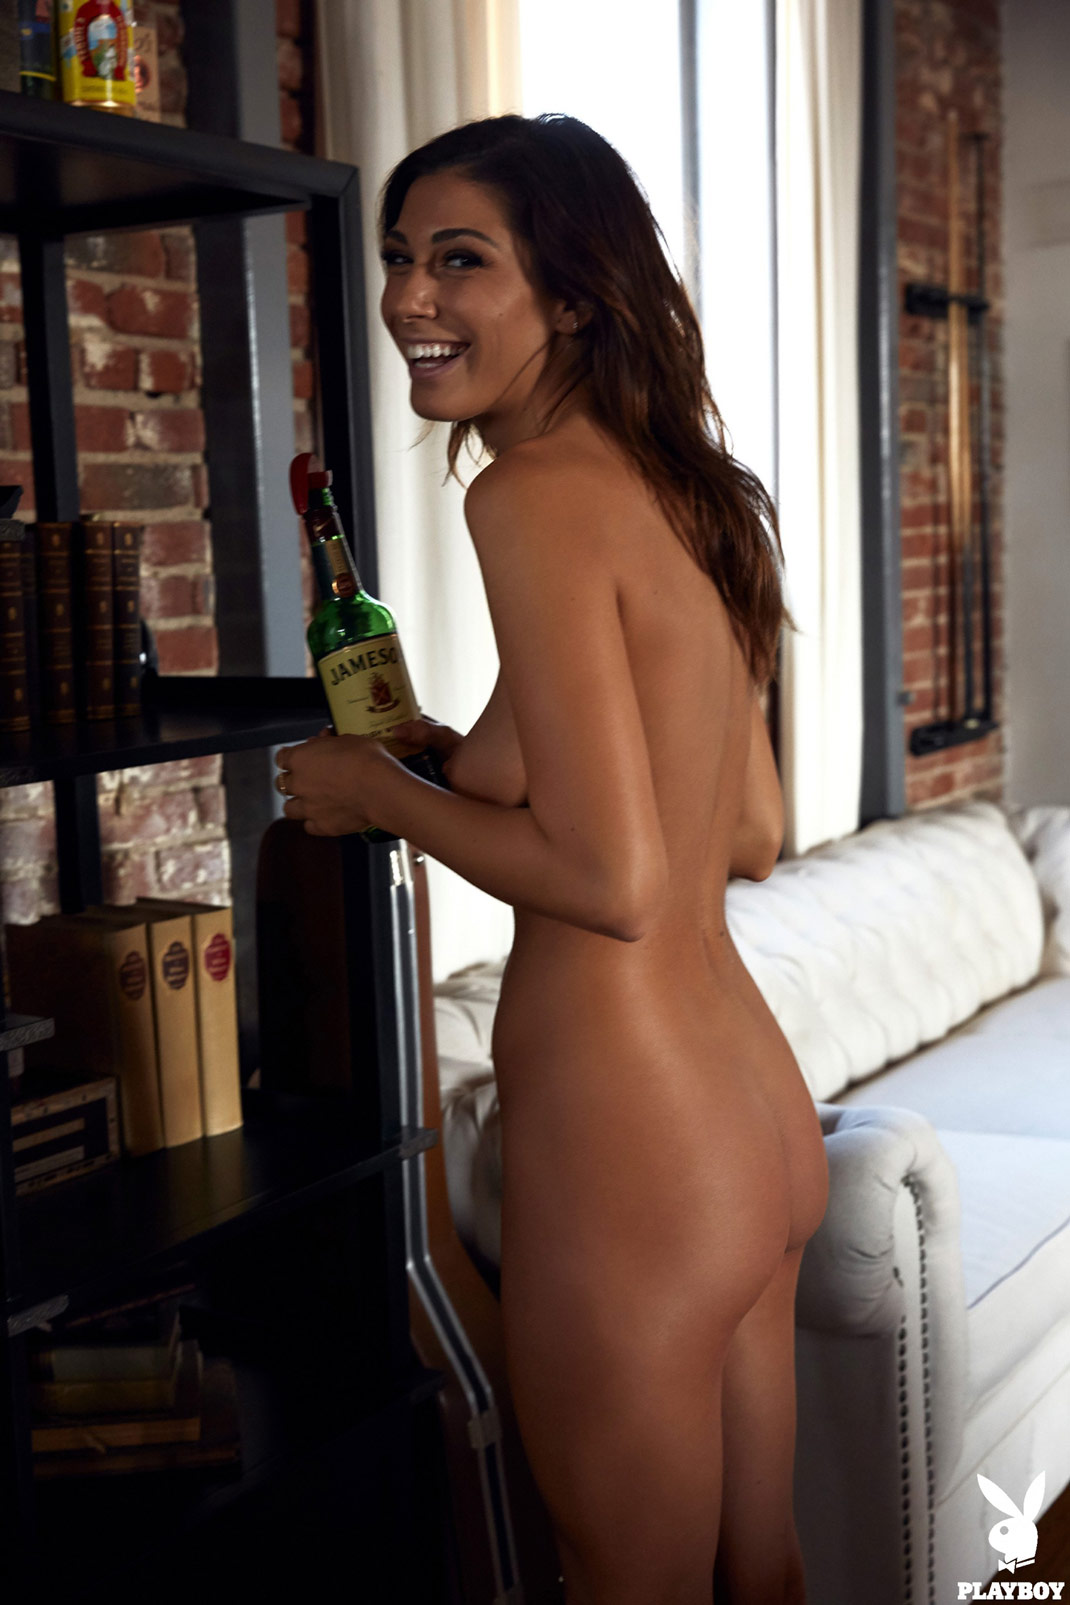 Brunette Nude Galleries By Date